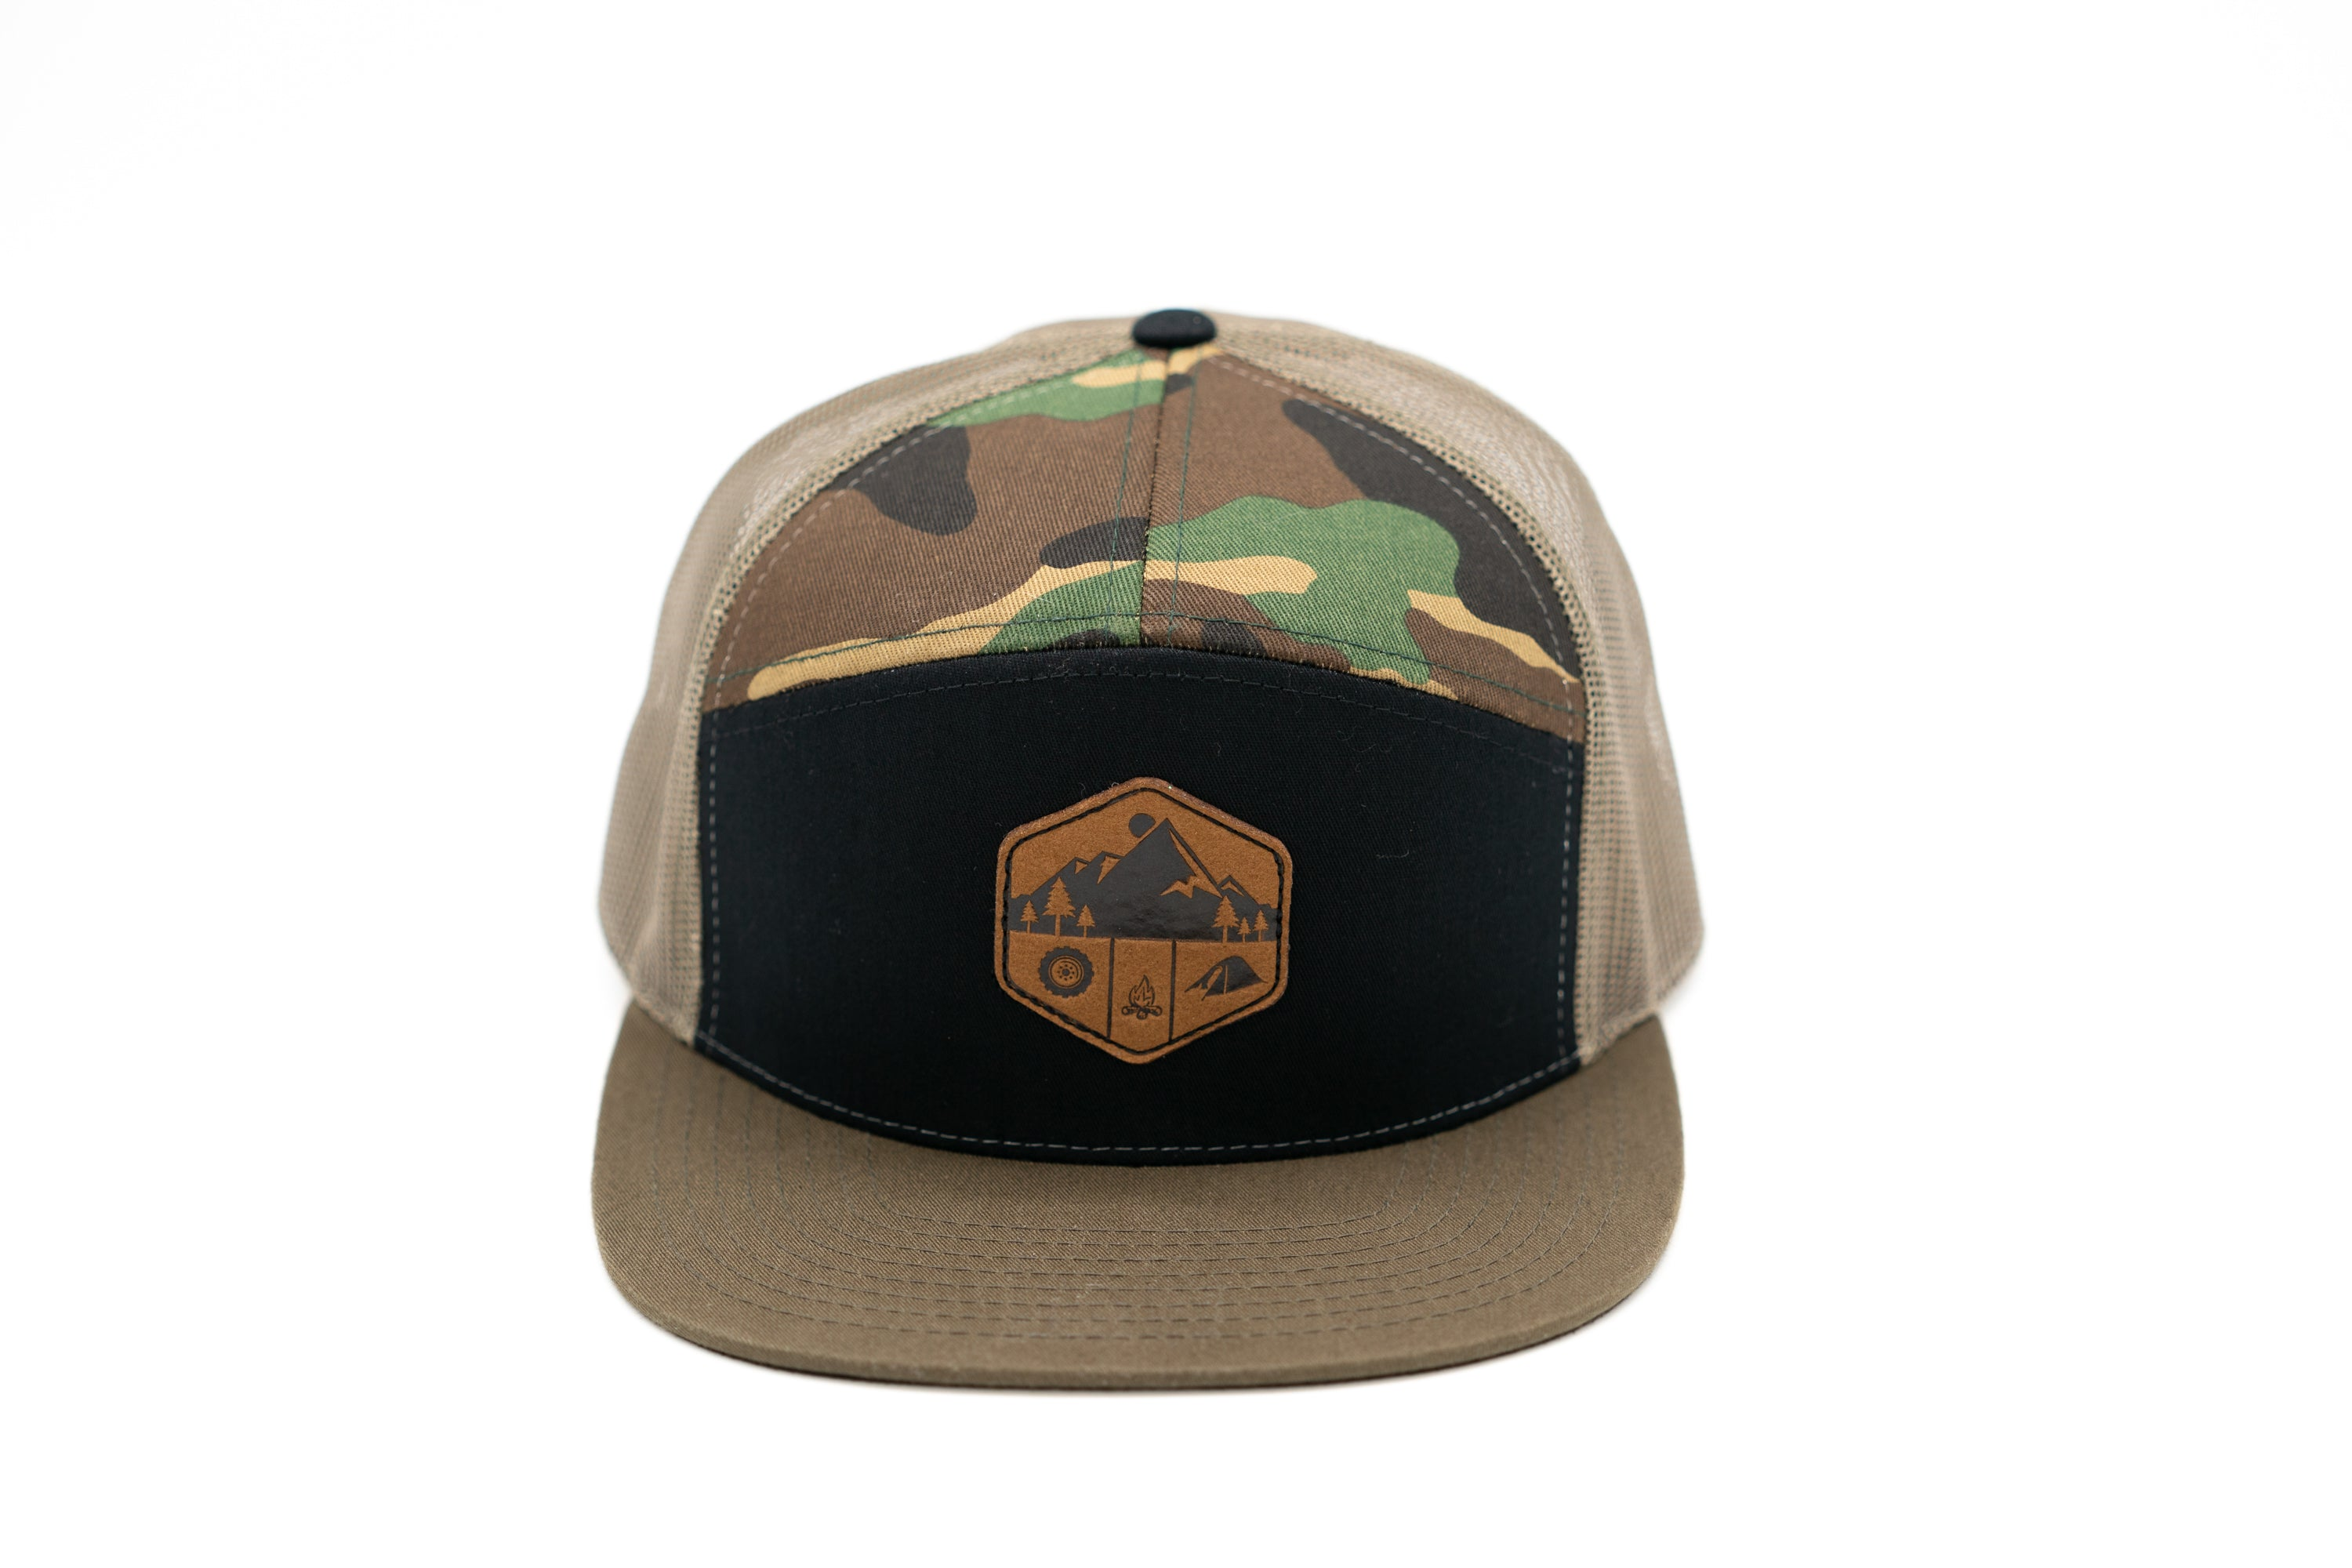 7 Panel Snapback Trucker Hat With Leather Camp Patch - Camo